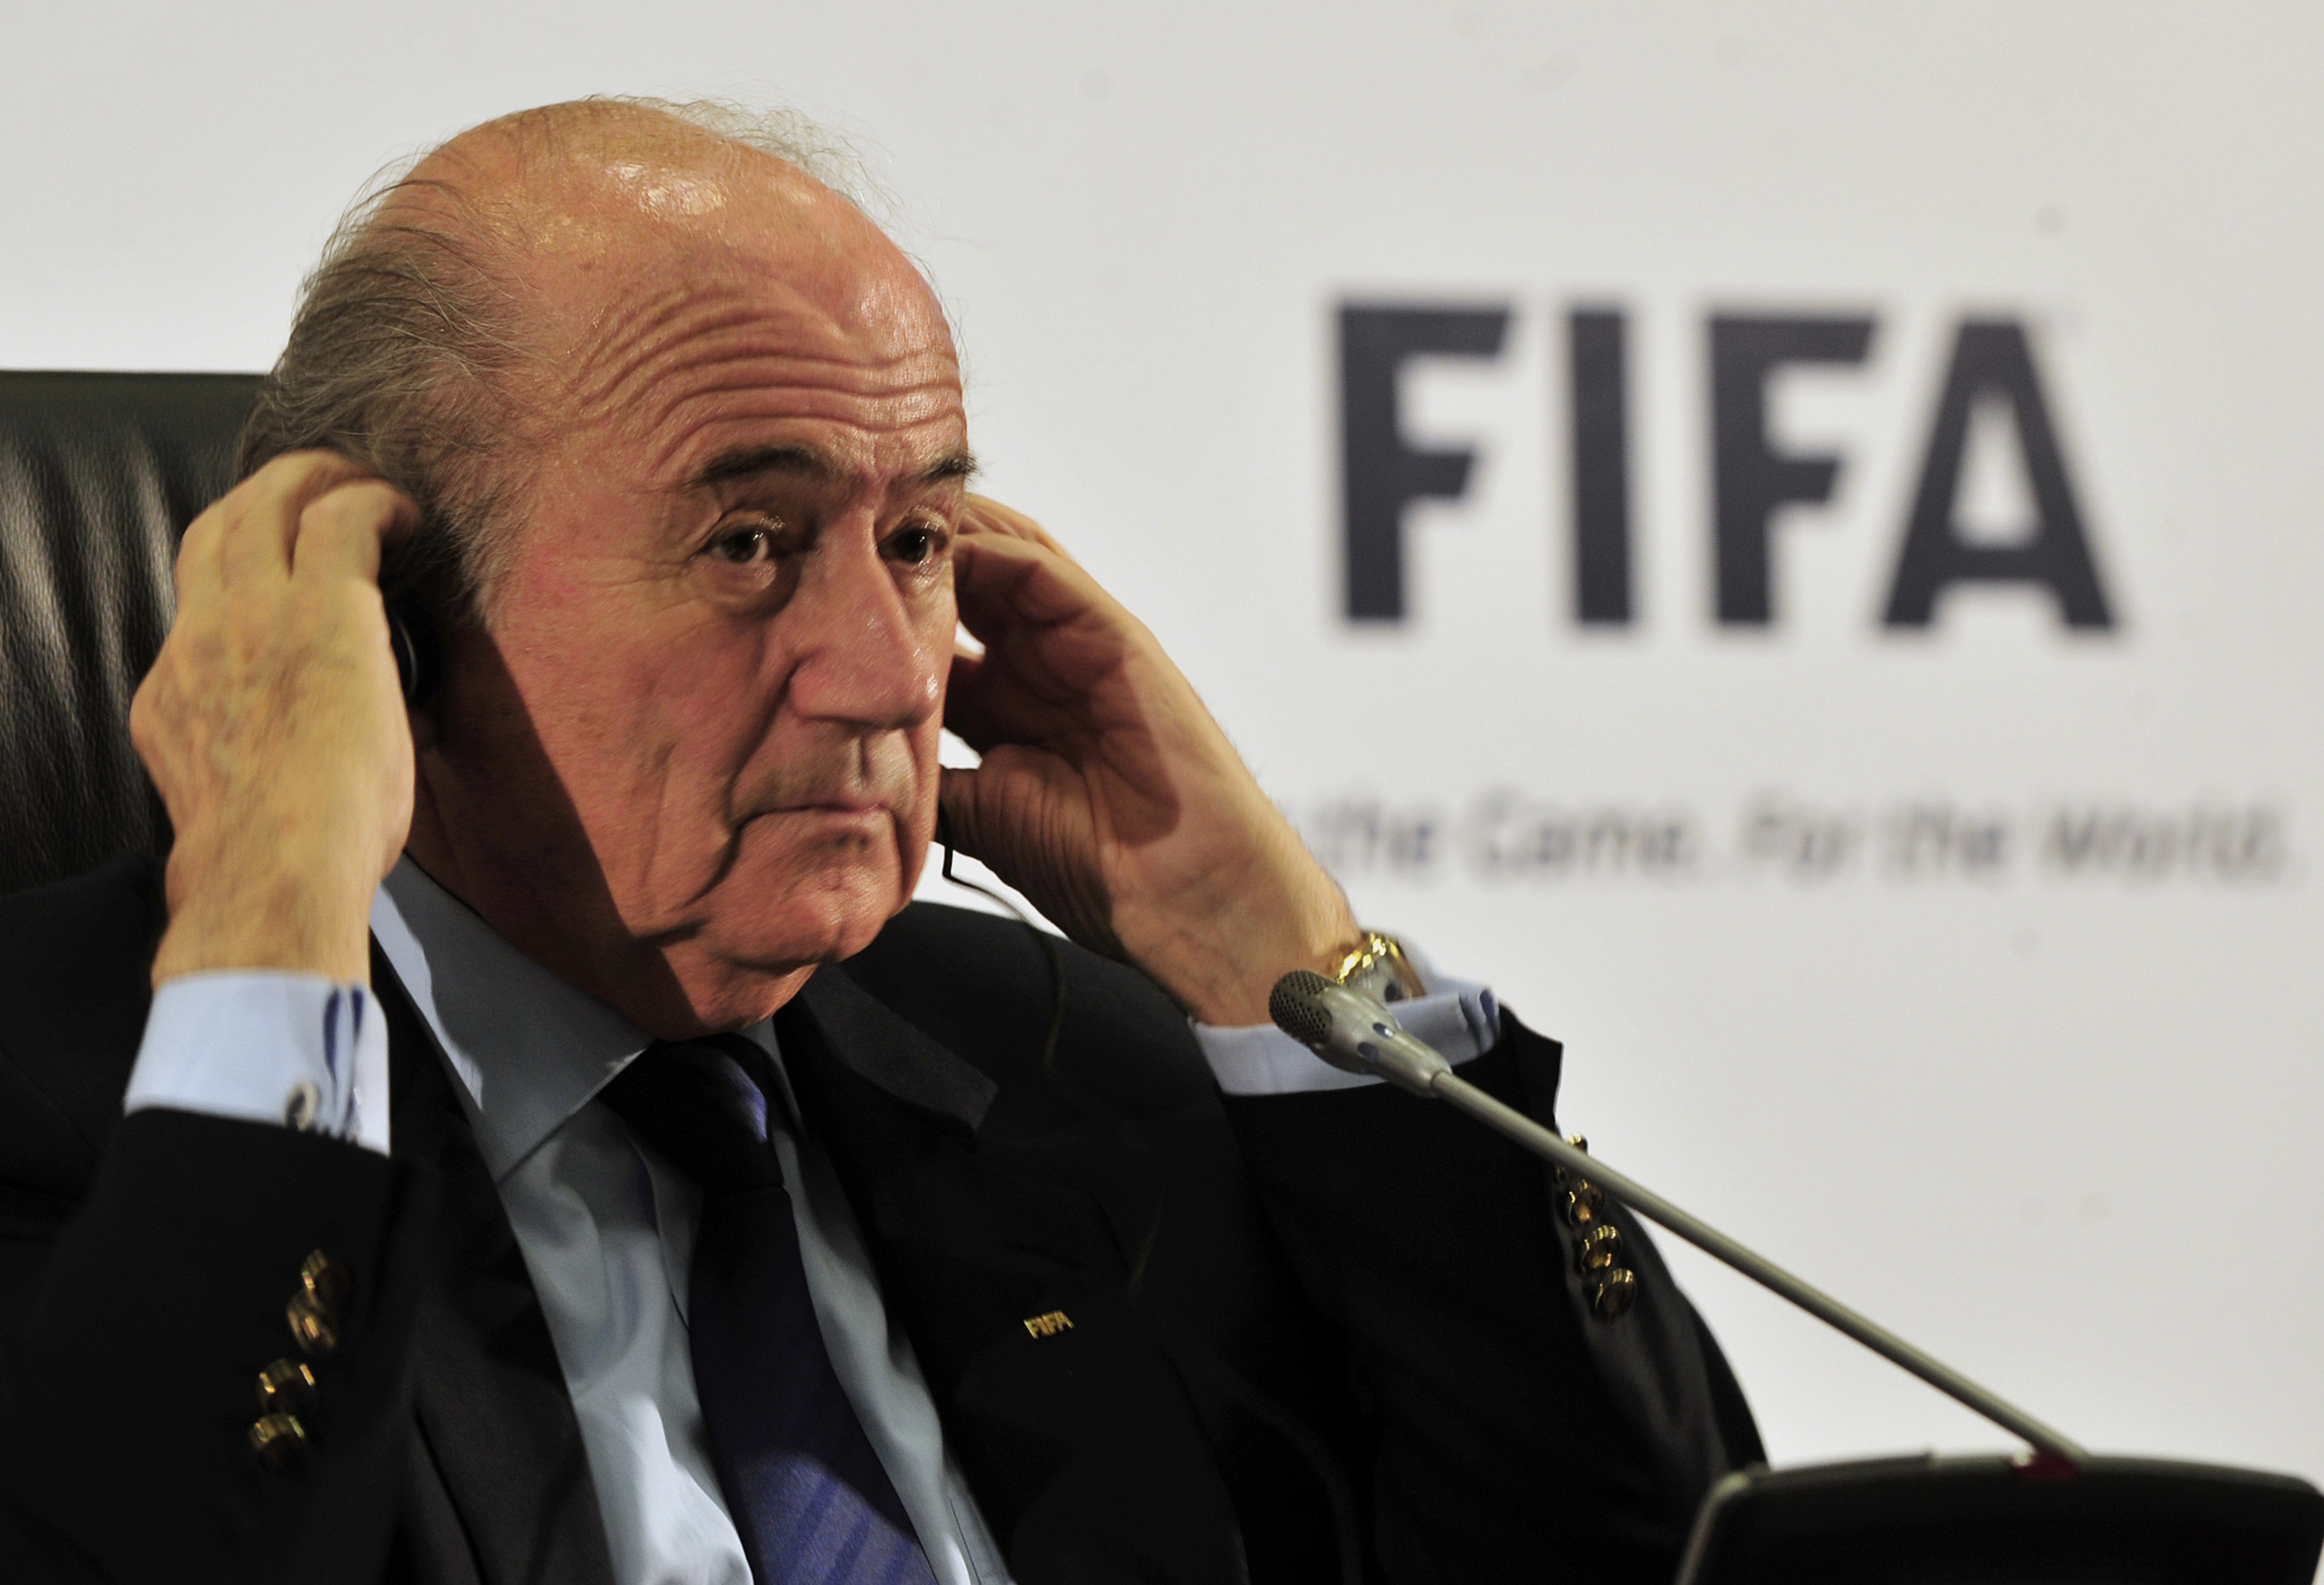 FIFA President Sepp Blatter at Johannesburg in 2010 (Image Source: Wikimedia Commons/Marcello Casal Jr.)